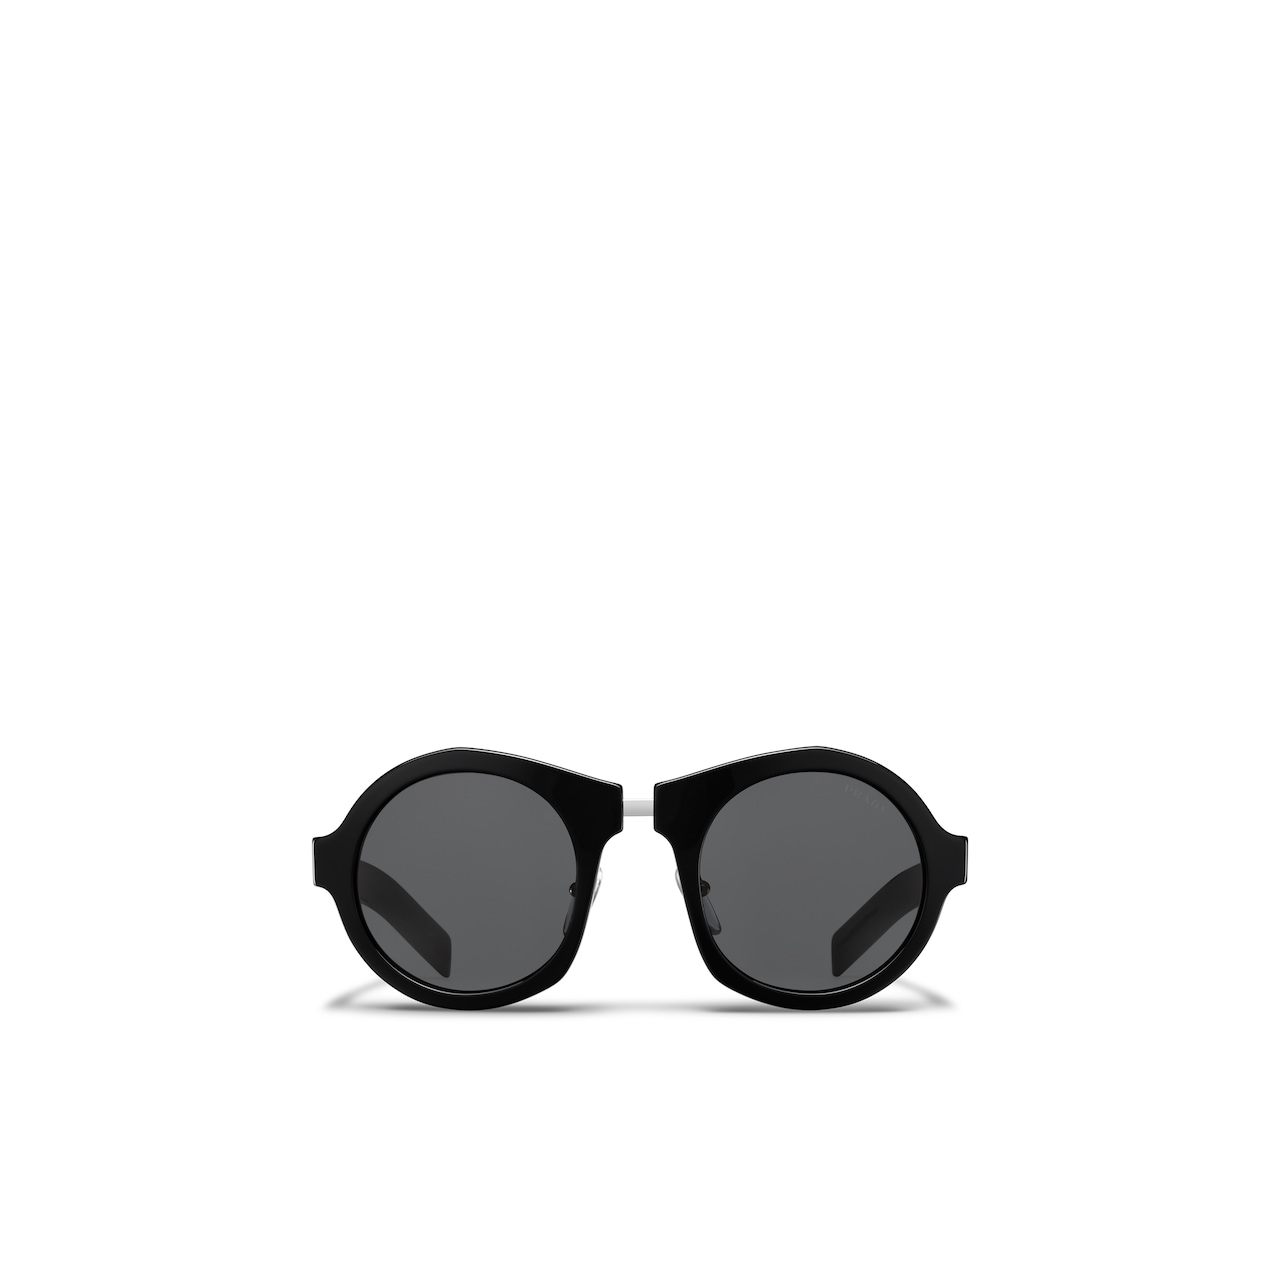 Prada Prada Duple sunglasses 1